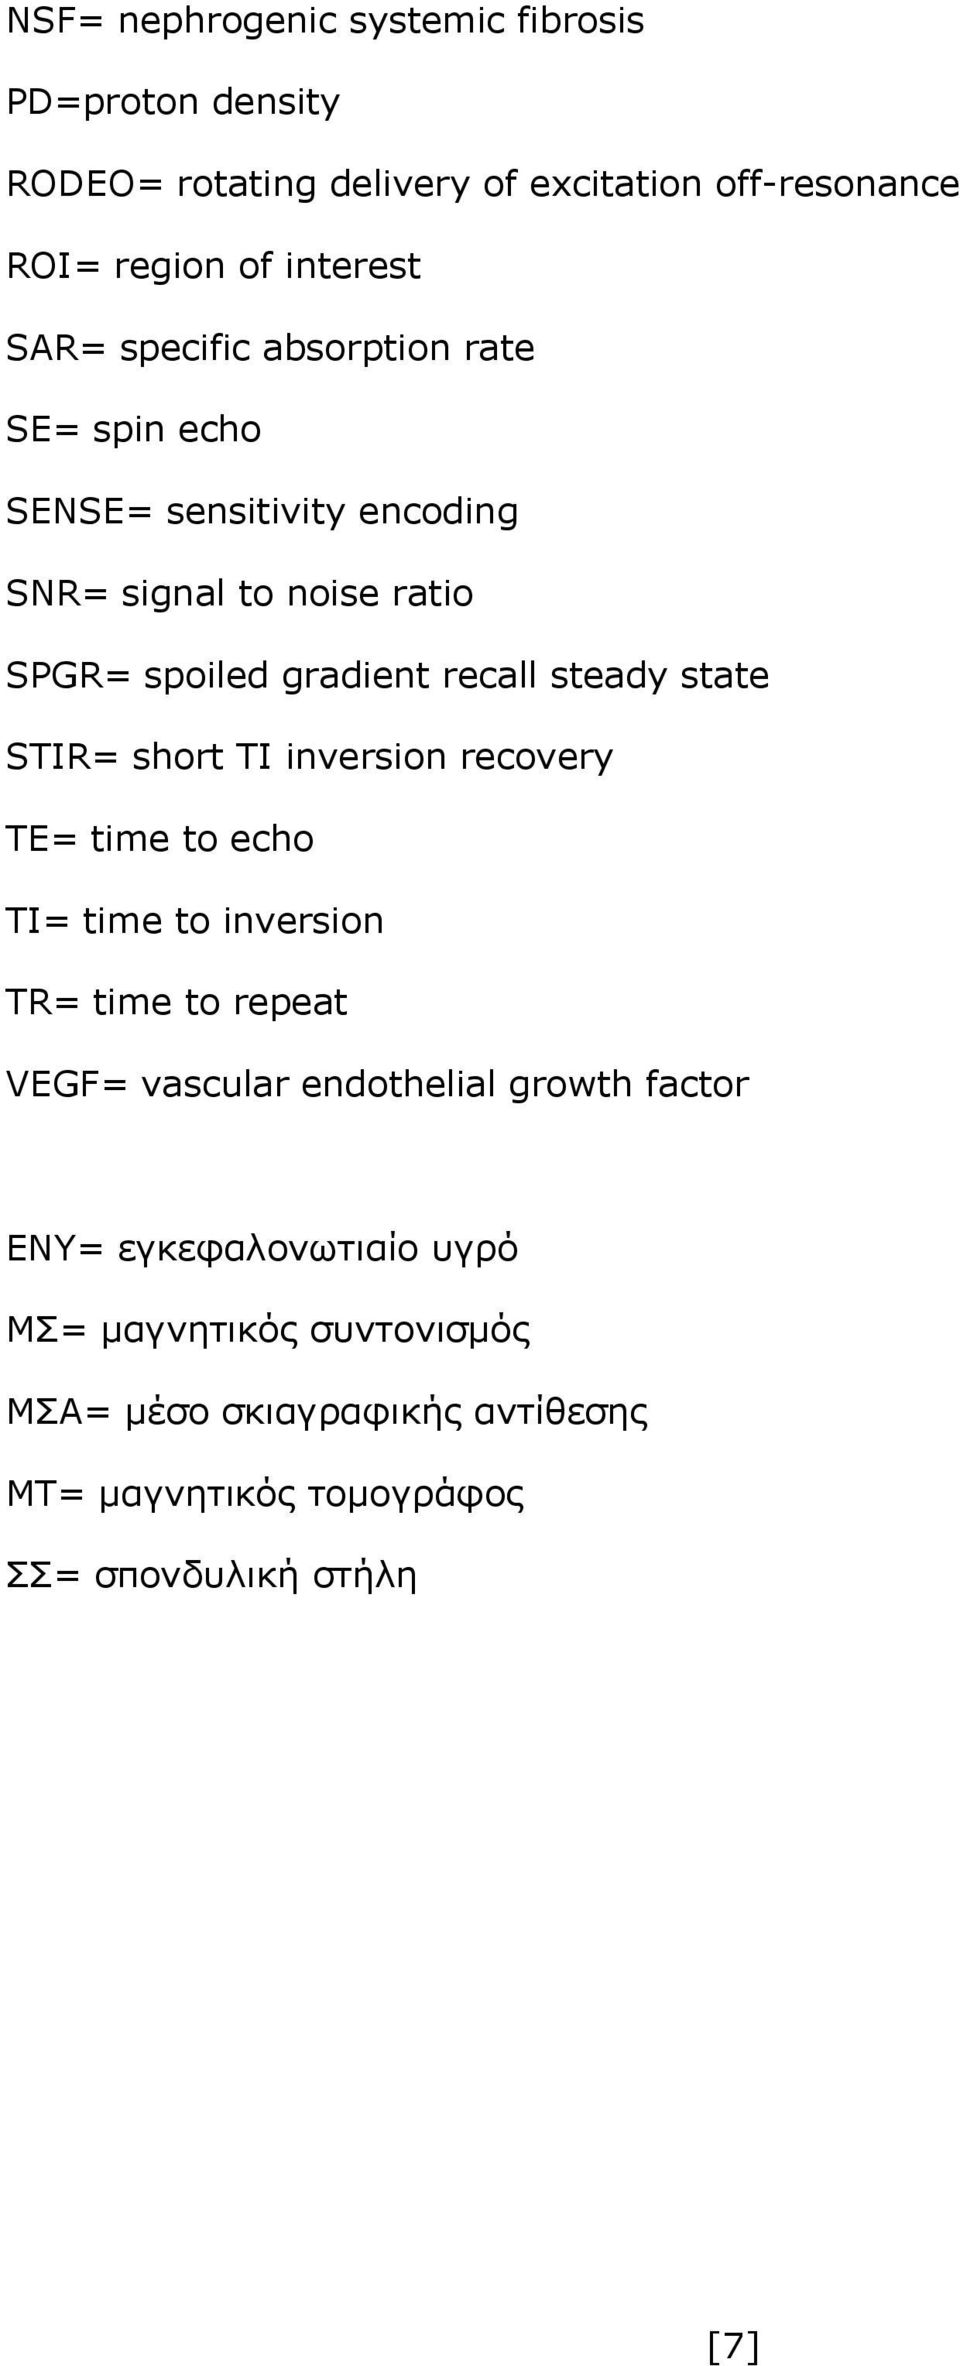 state STIR= short TI inversion recovery TE= time to echo TI= time to inversion TR= time to repeat VEGF= vascular endothelial growth